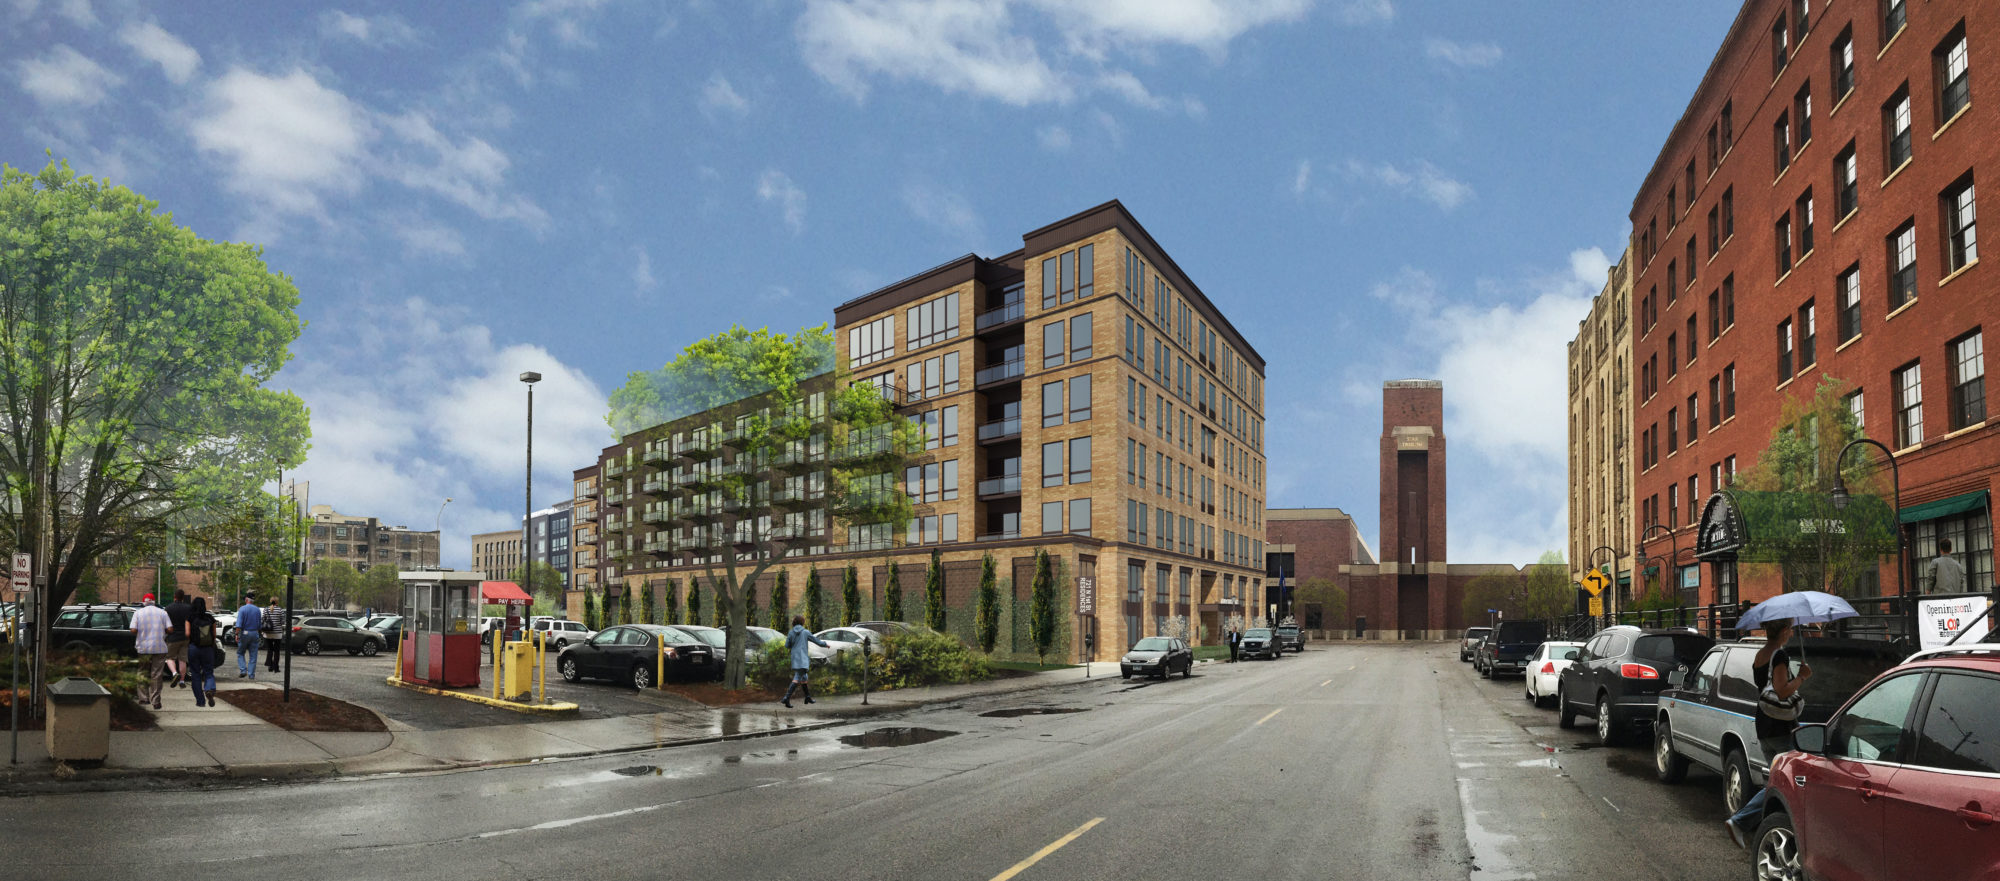 721 1st Street North Apartments Momentum Design Group